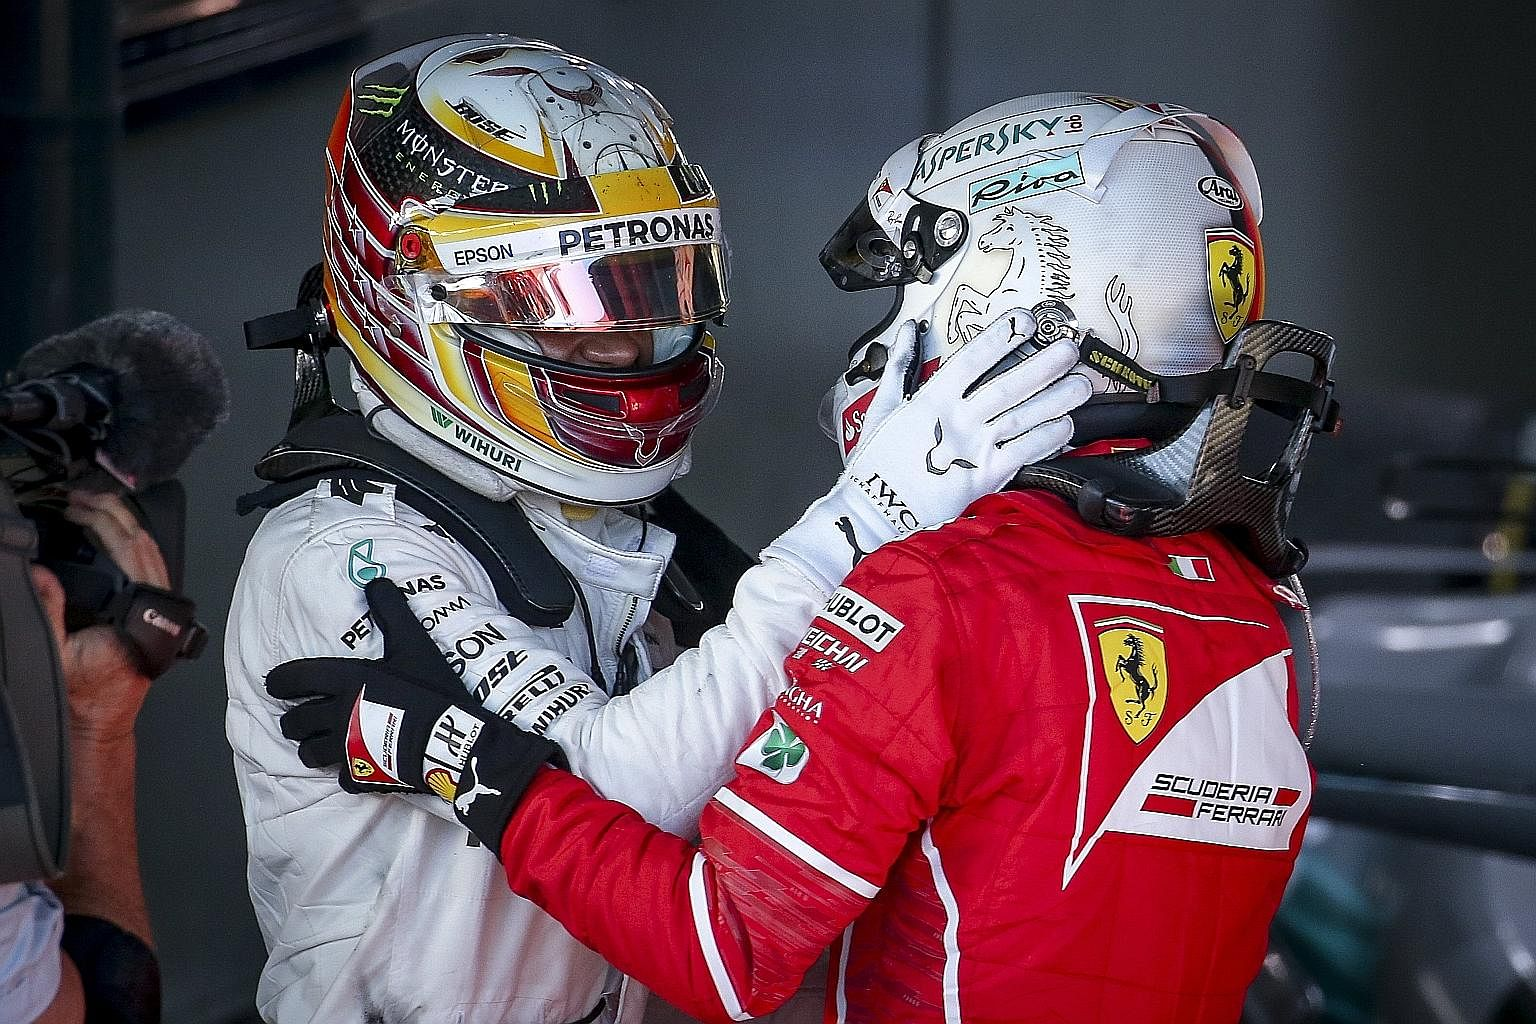 Mercedes' Lewis Hamilton (left) congratulating Sebastian Vettel after the Ferrari driver beat him by nearly 10 seconds.